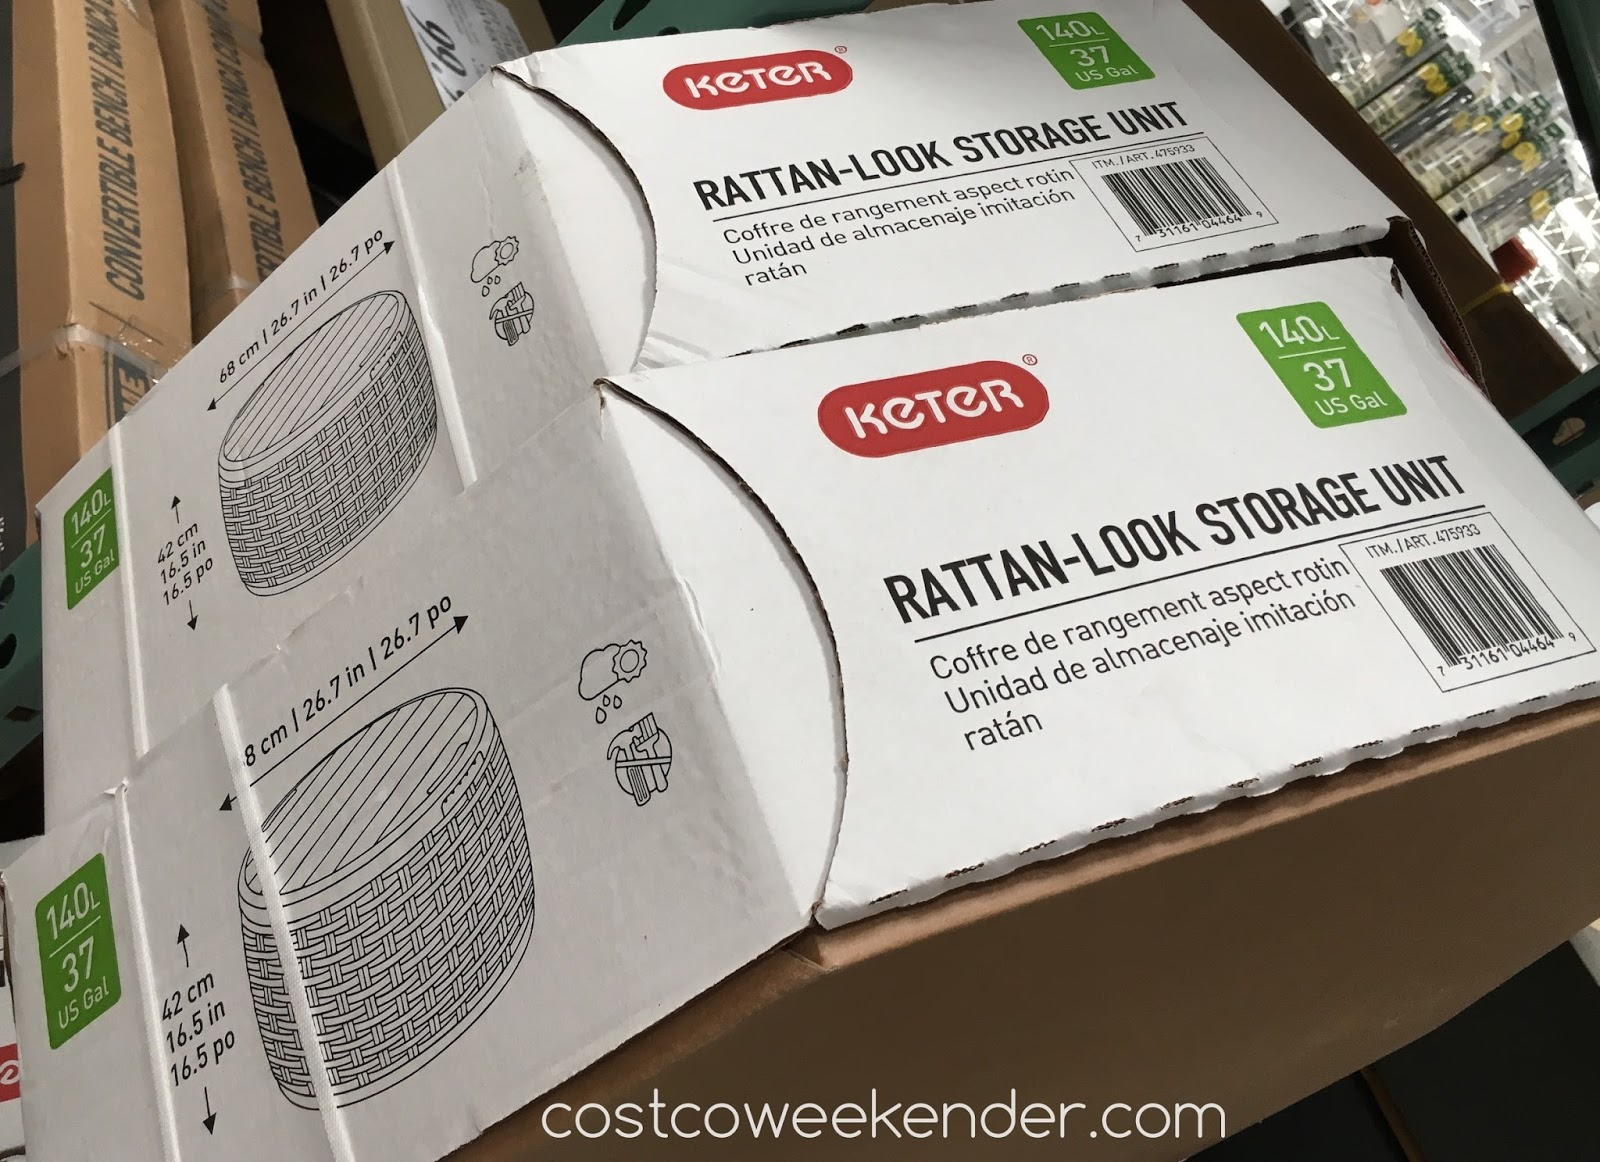 Costco Coffee Table Keter Rattan Look Storage Unit Costco Weekender